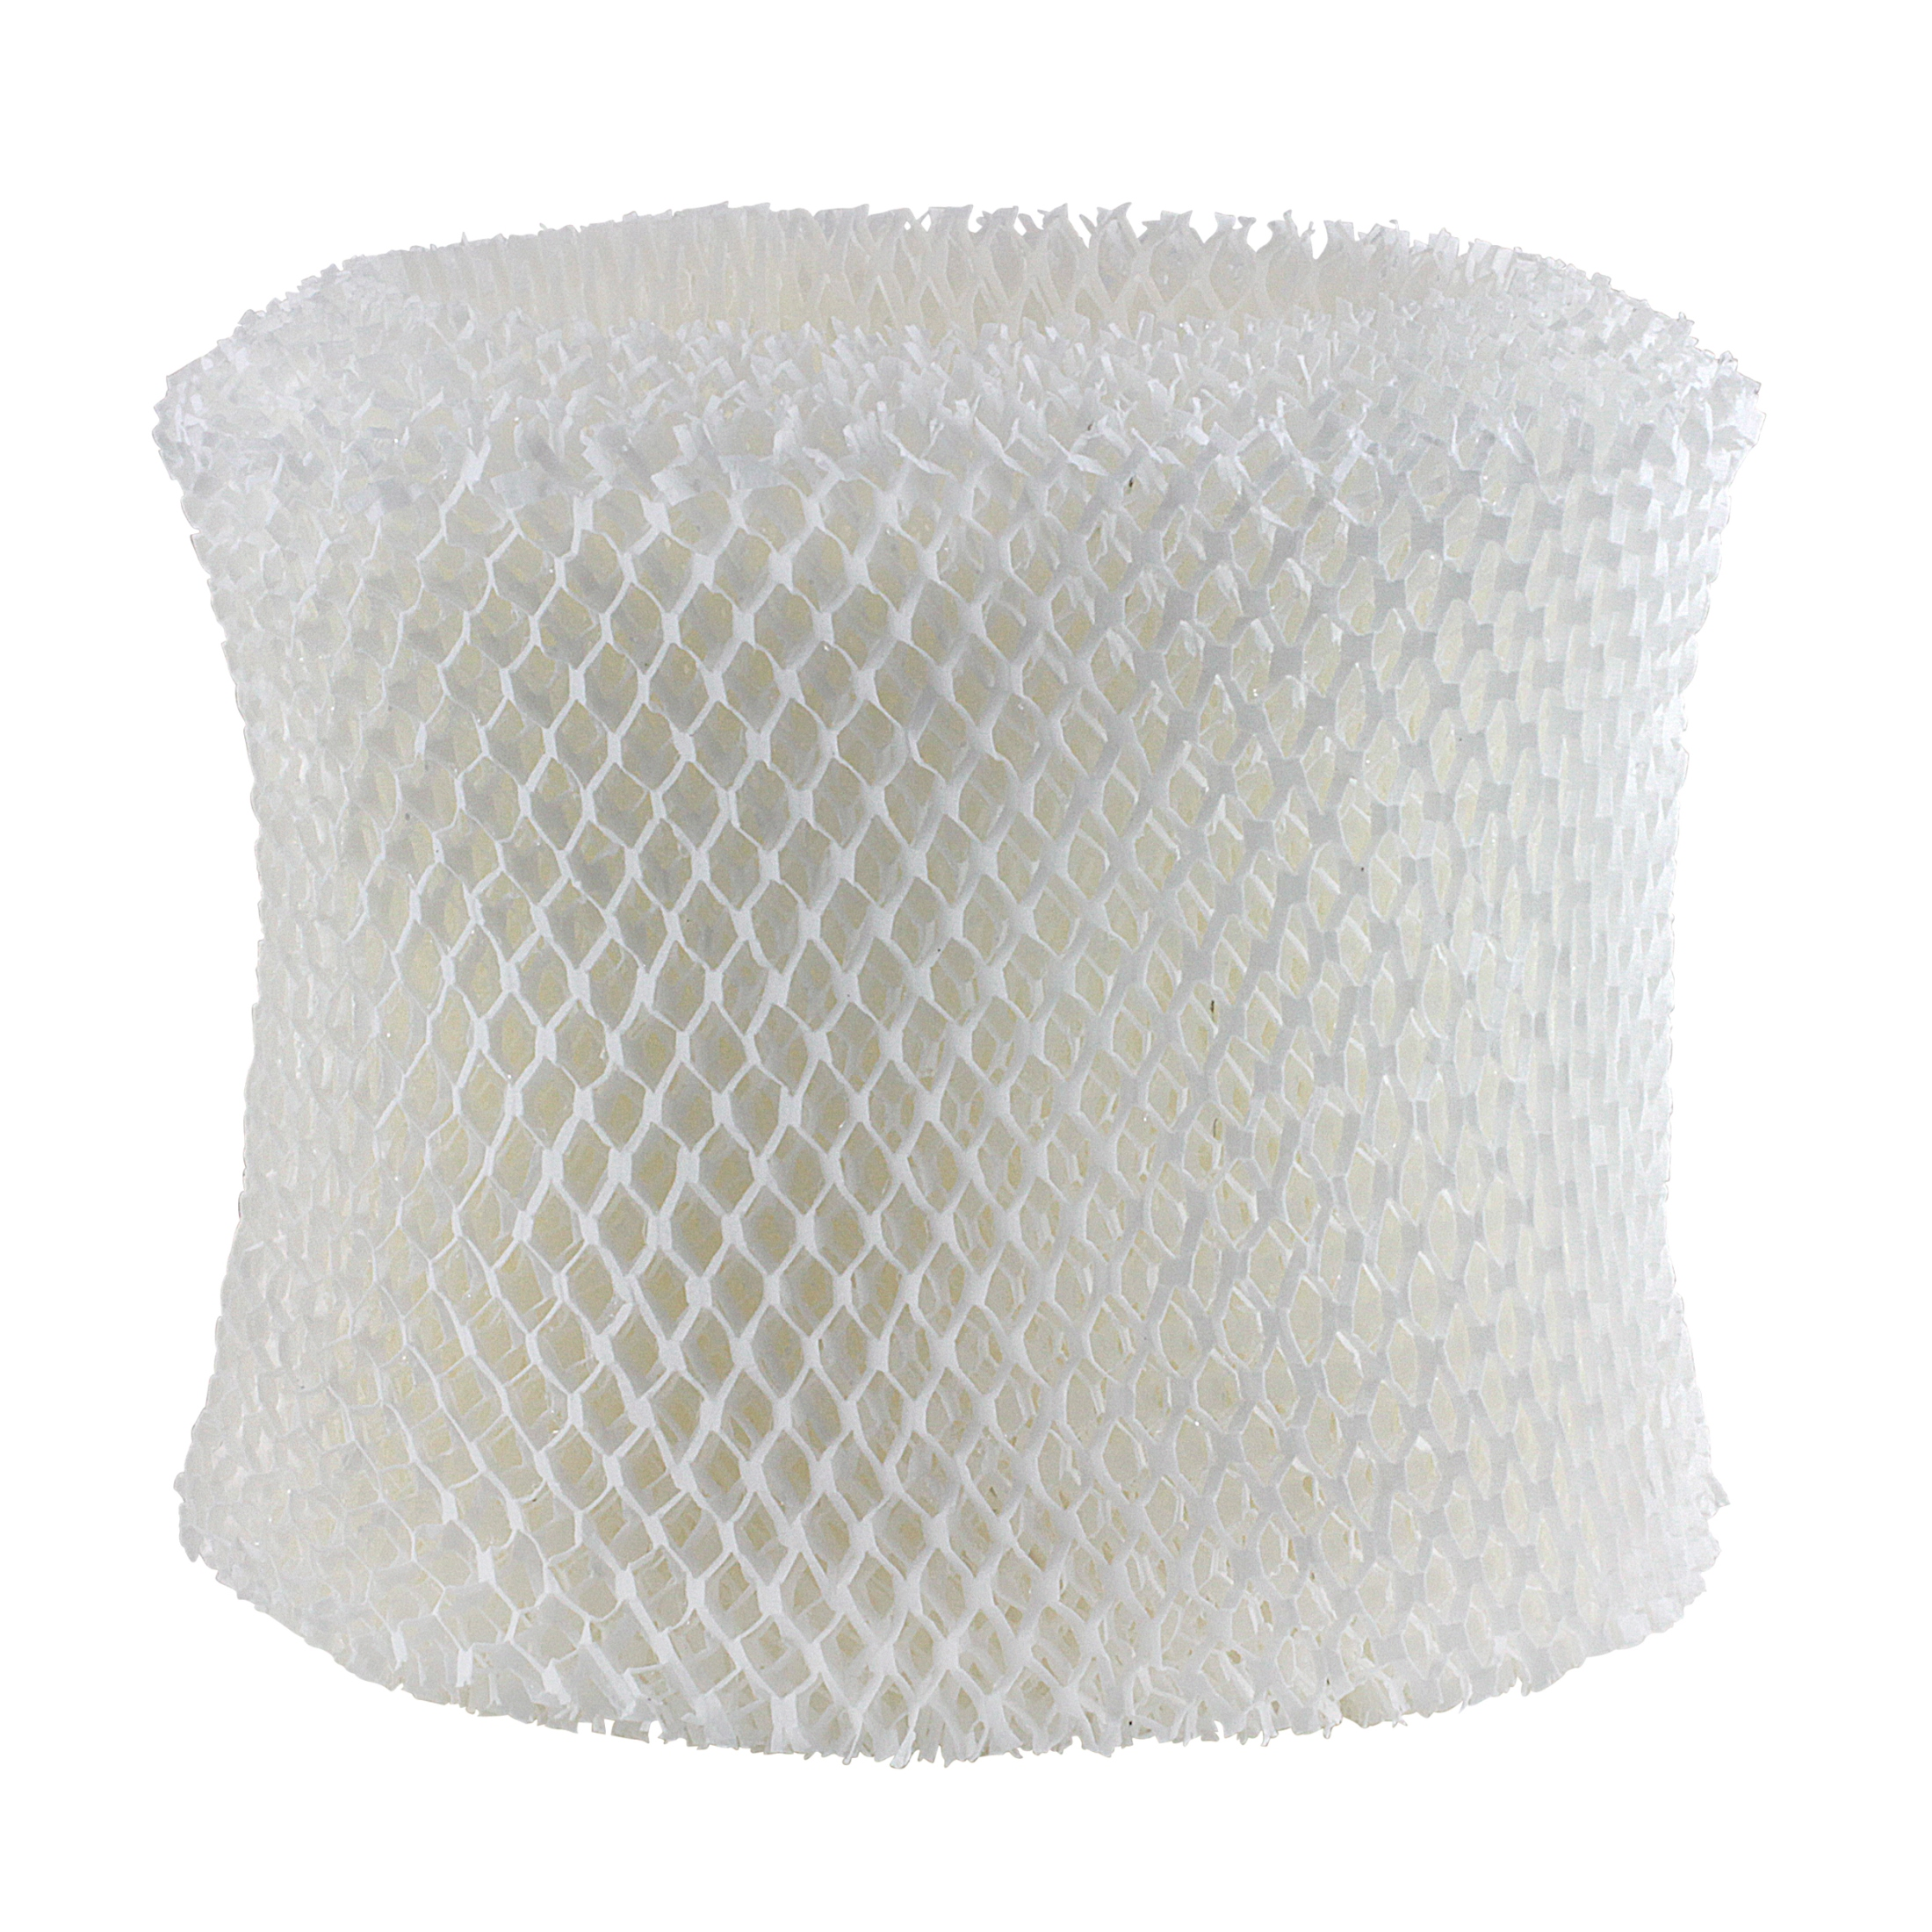 Holmes HWF65 & H65 C Humidifier Wick Filter Replaces Part # HWF 65  #726C59